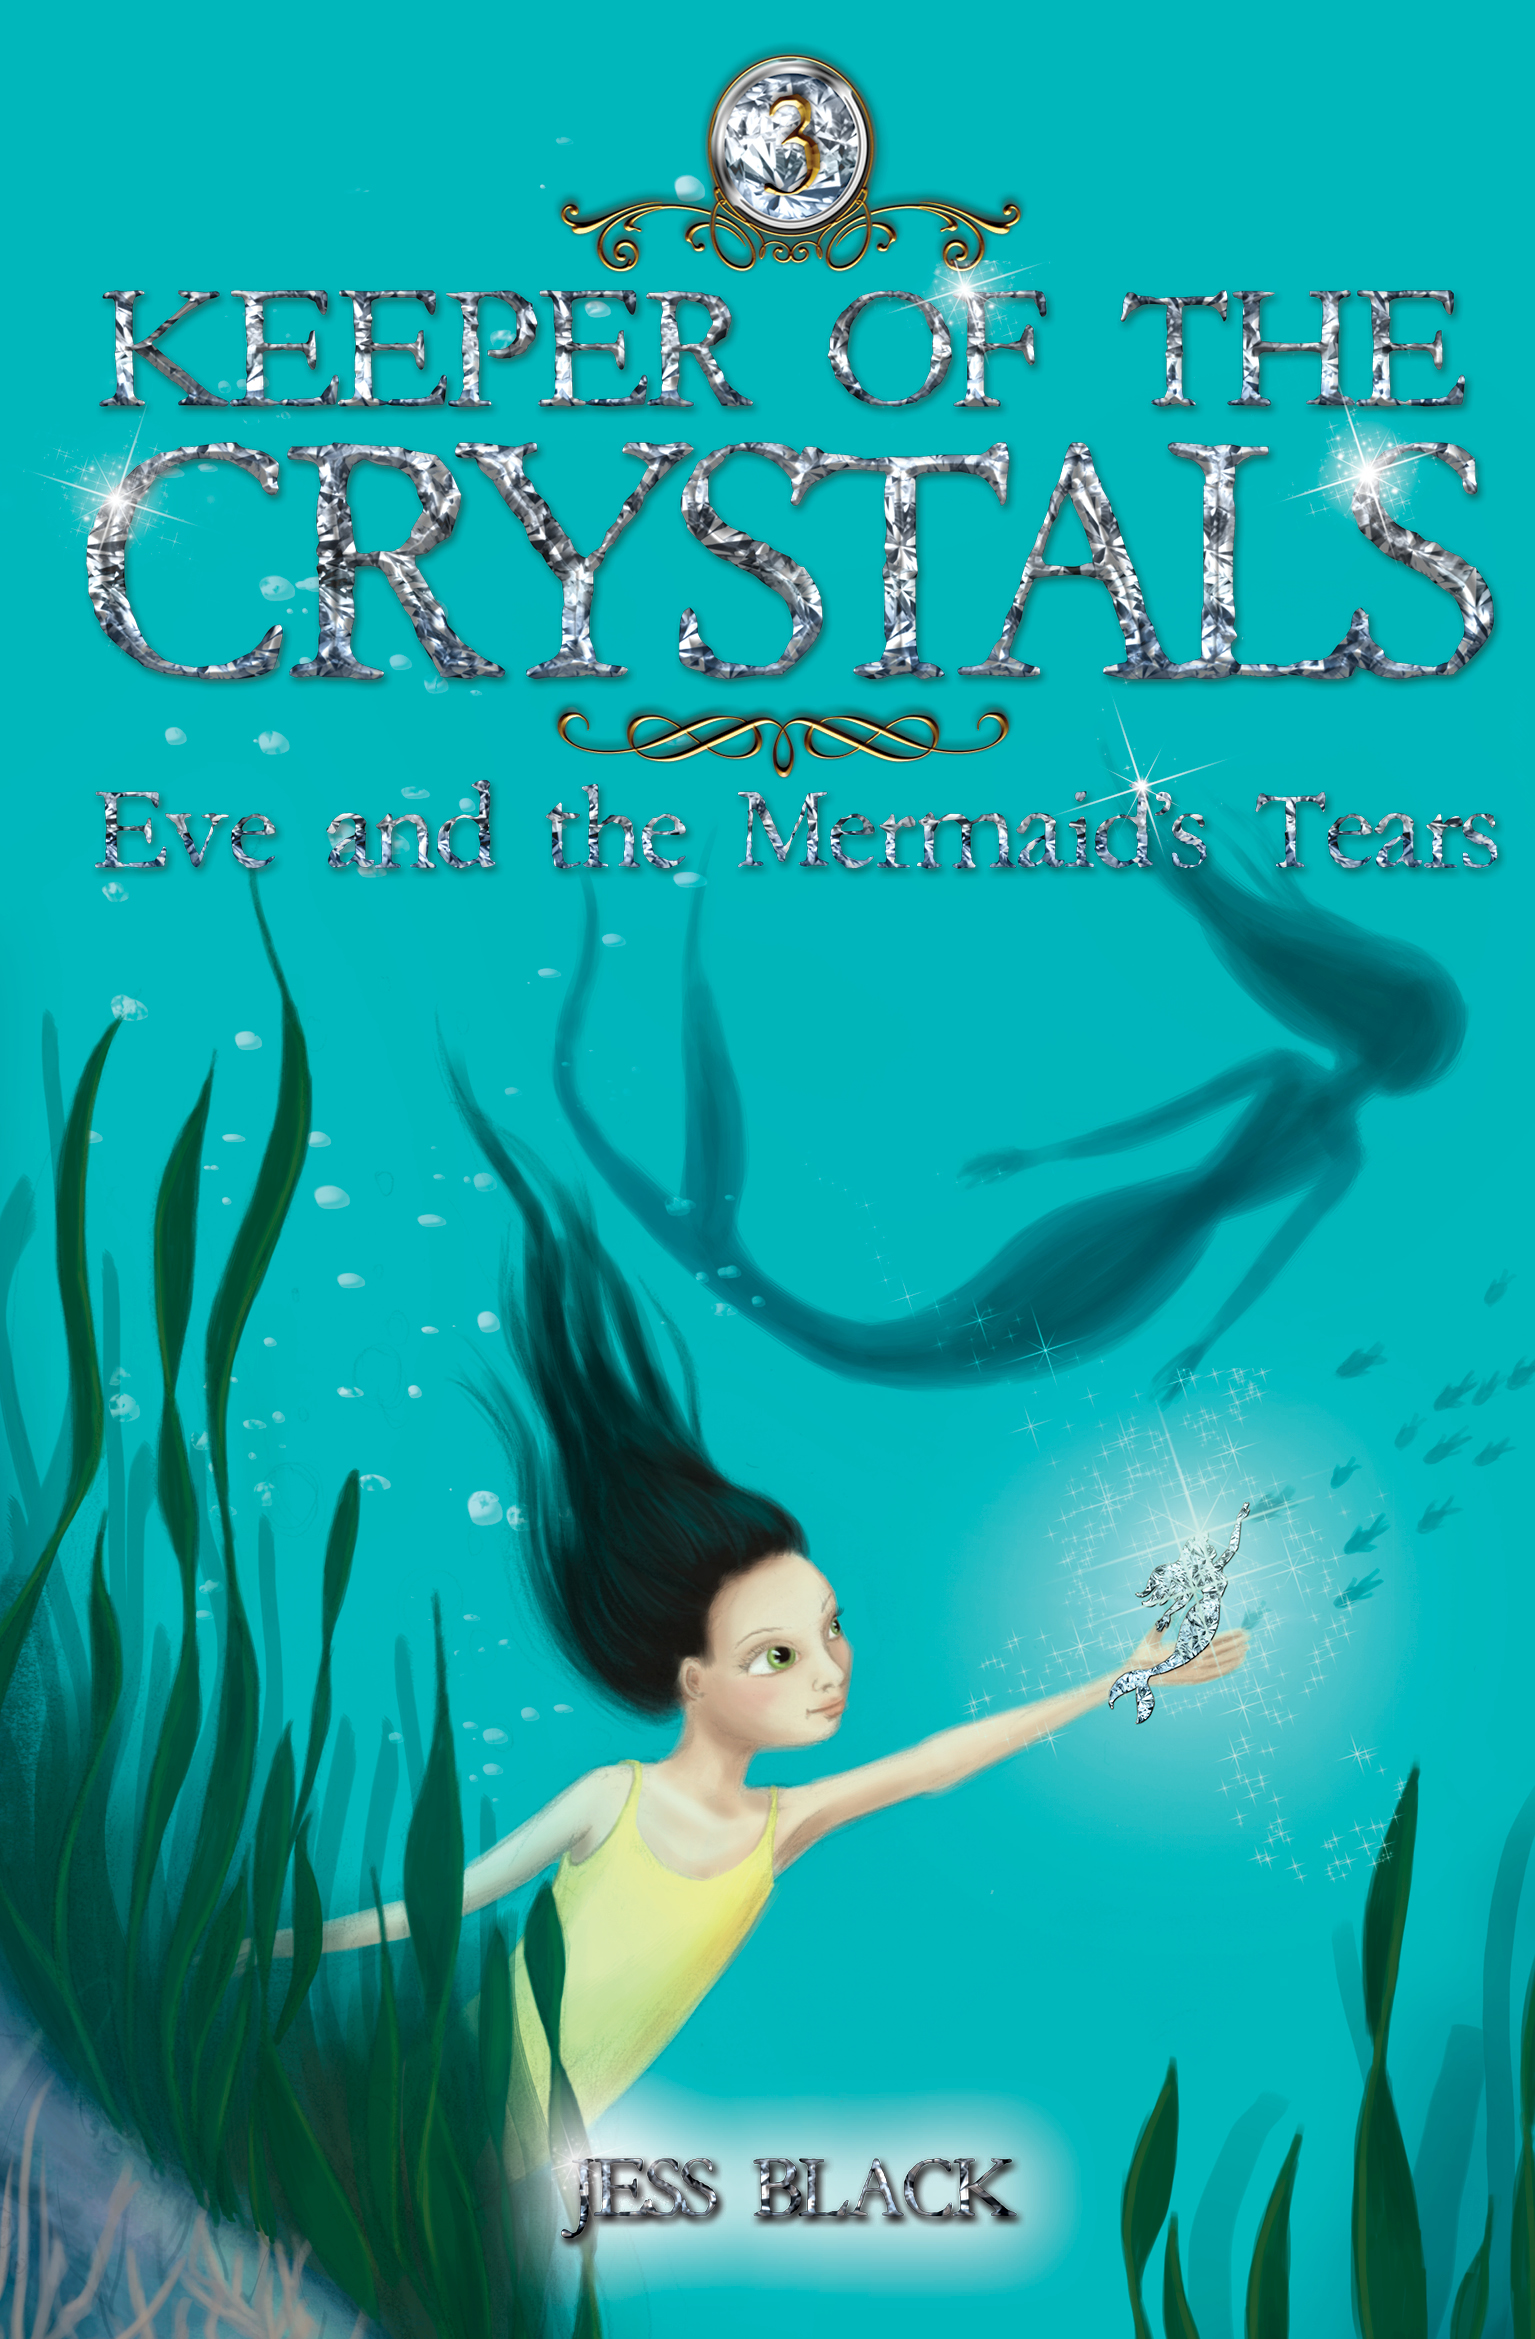 Keeper of the crystals jacket